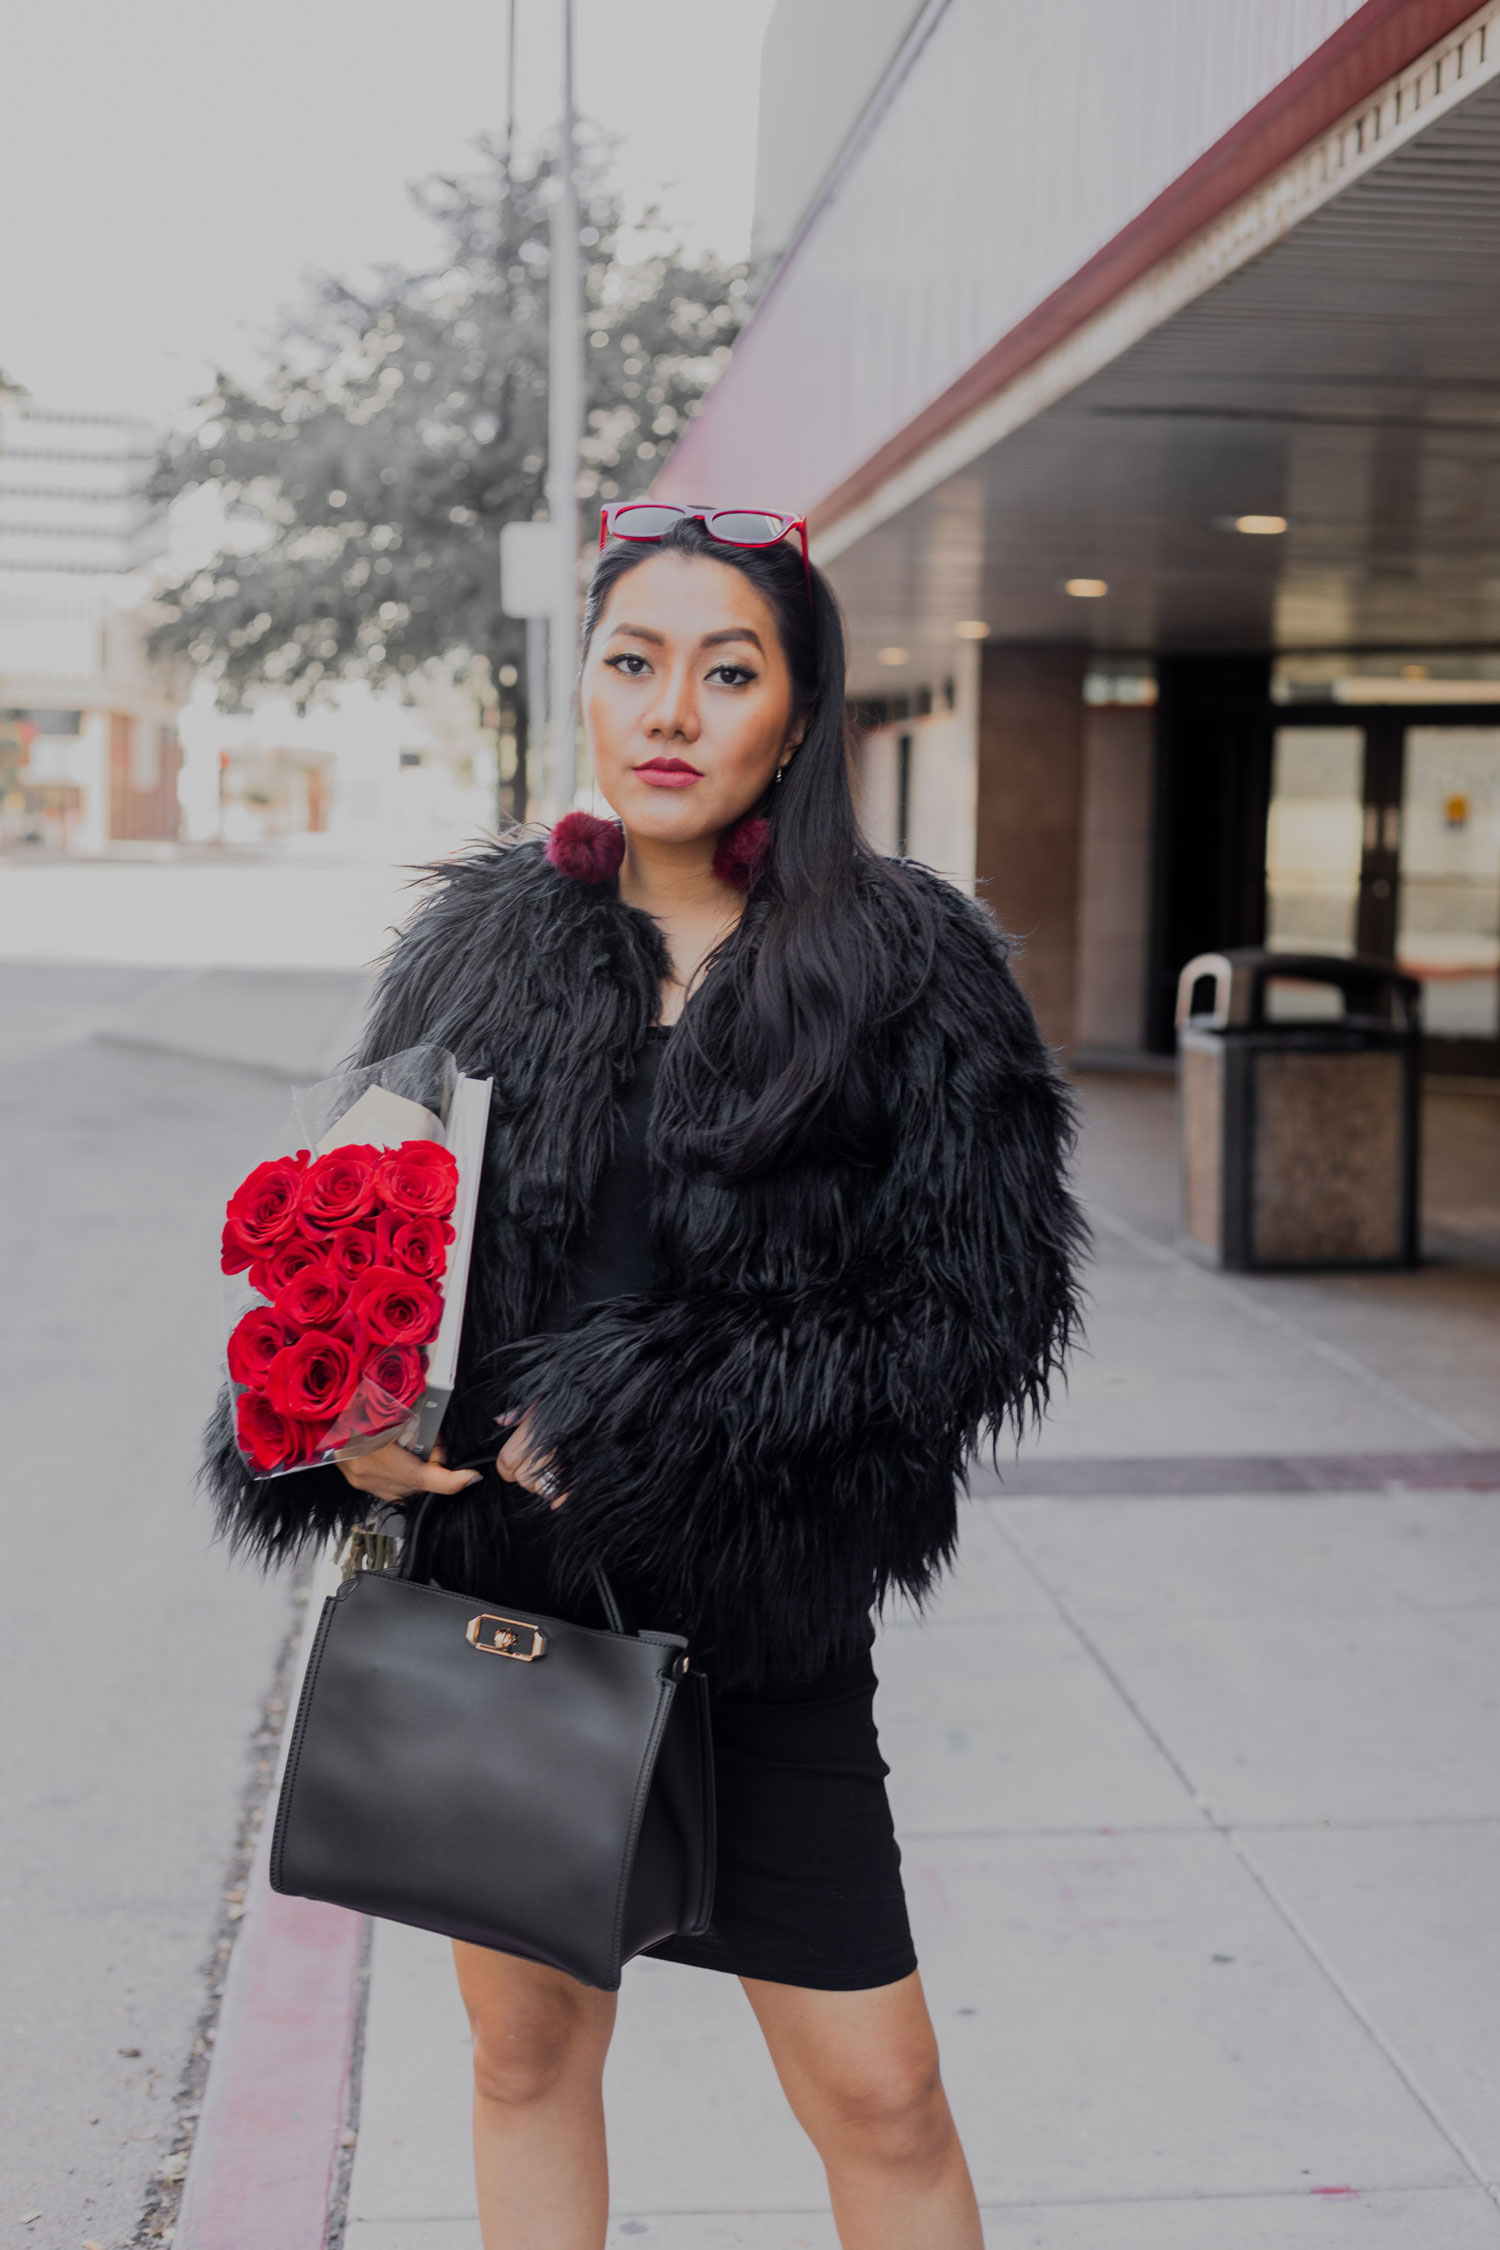 Fall/ Winter Outfit Idea | Faux Fur Coat #GoodVibesGifting Day 5_12-21-2018_Molly Larsen IG @thevibescloset_allaboutgoodvibes.com